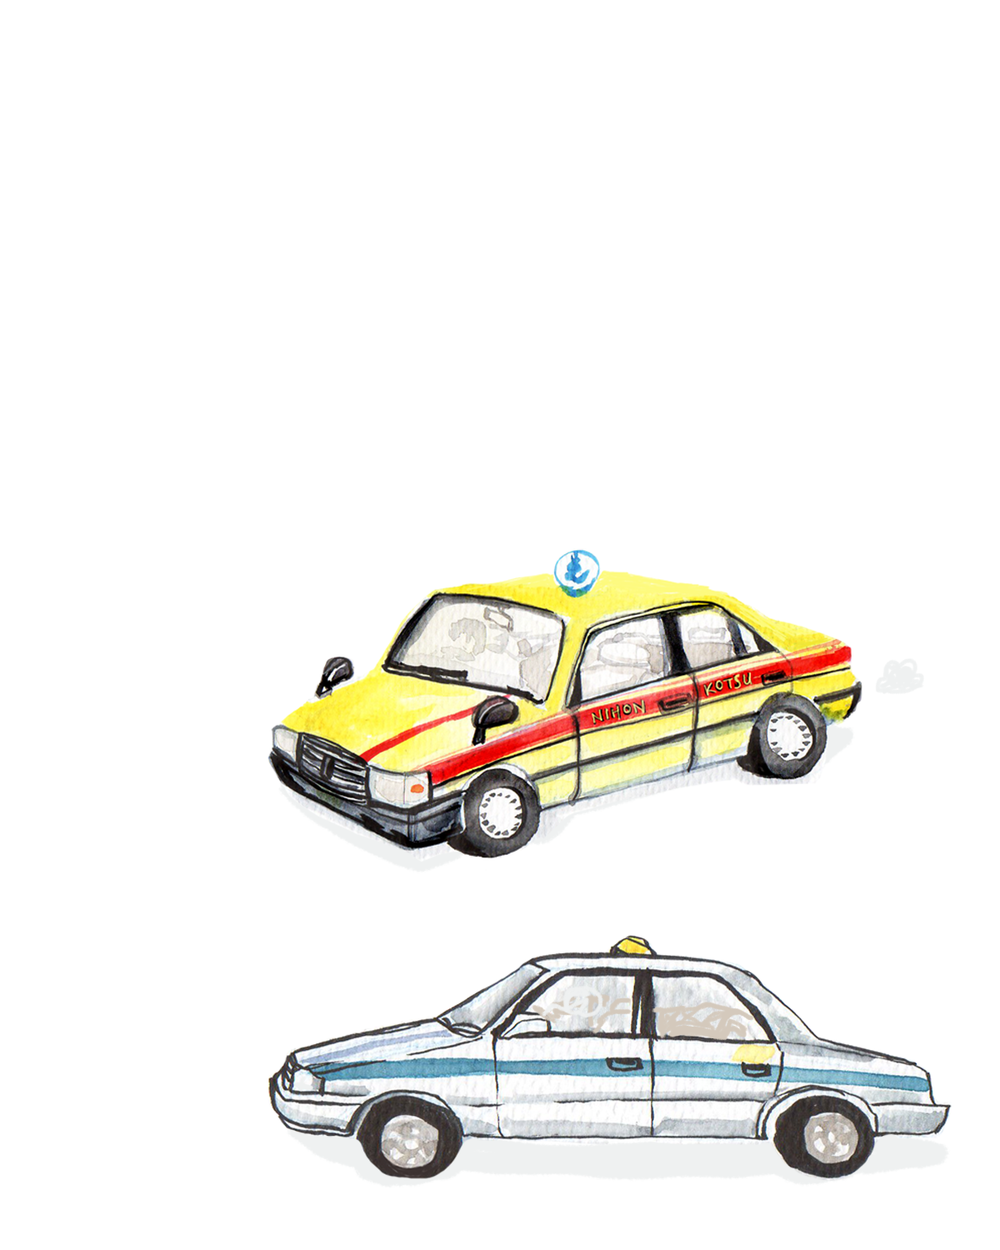 taxis.png